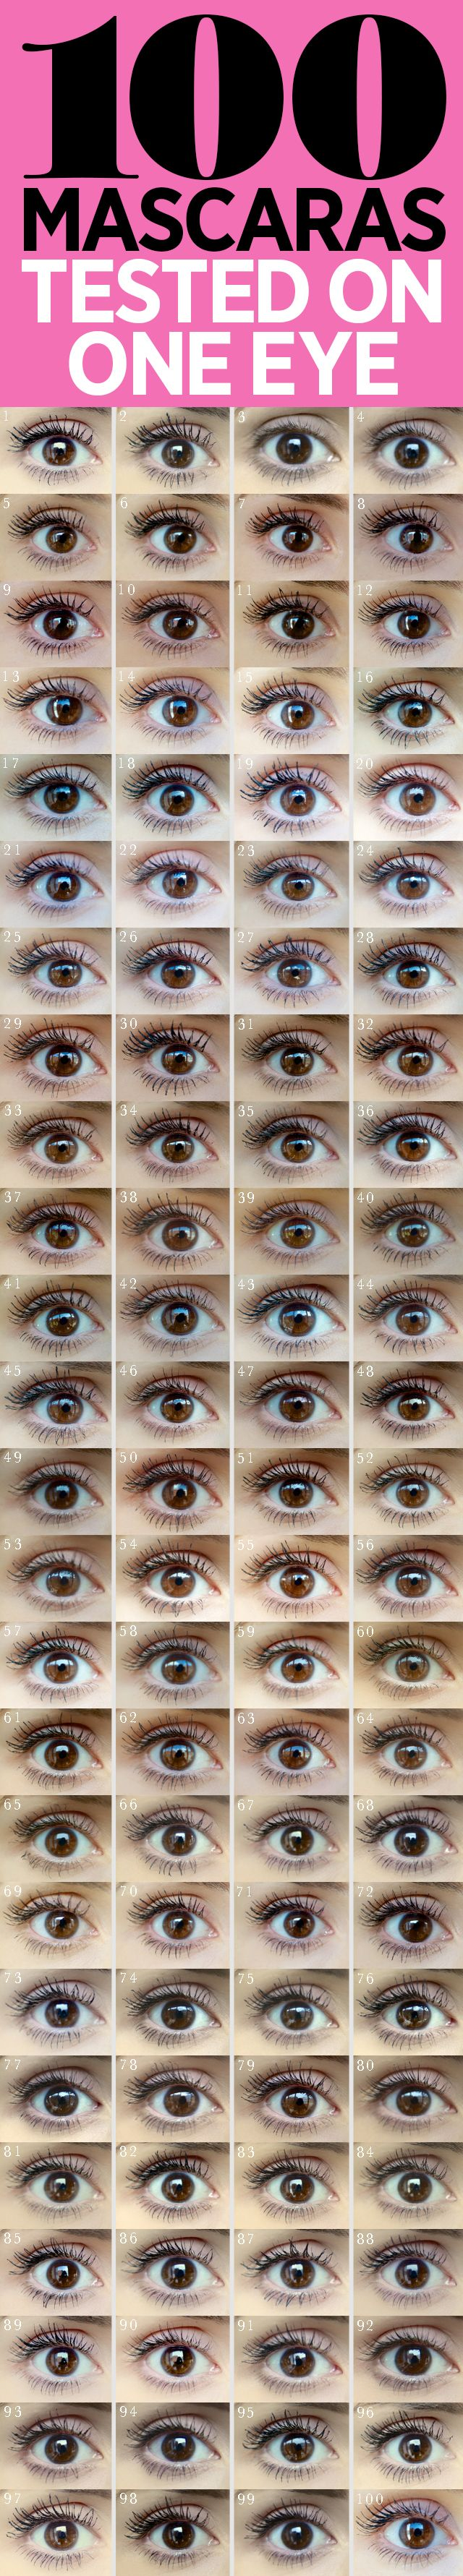 100 mascaras tested on ONE eye: picture reviews - This month in the Cosmo Beauty Lab we tested 100 mascaras, see the results here